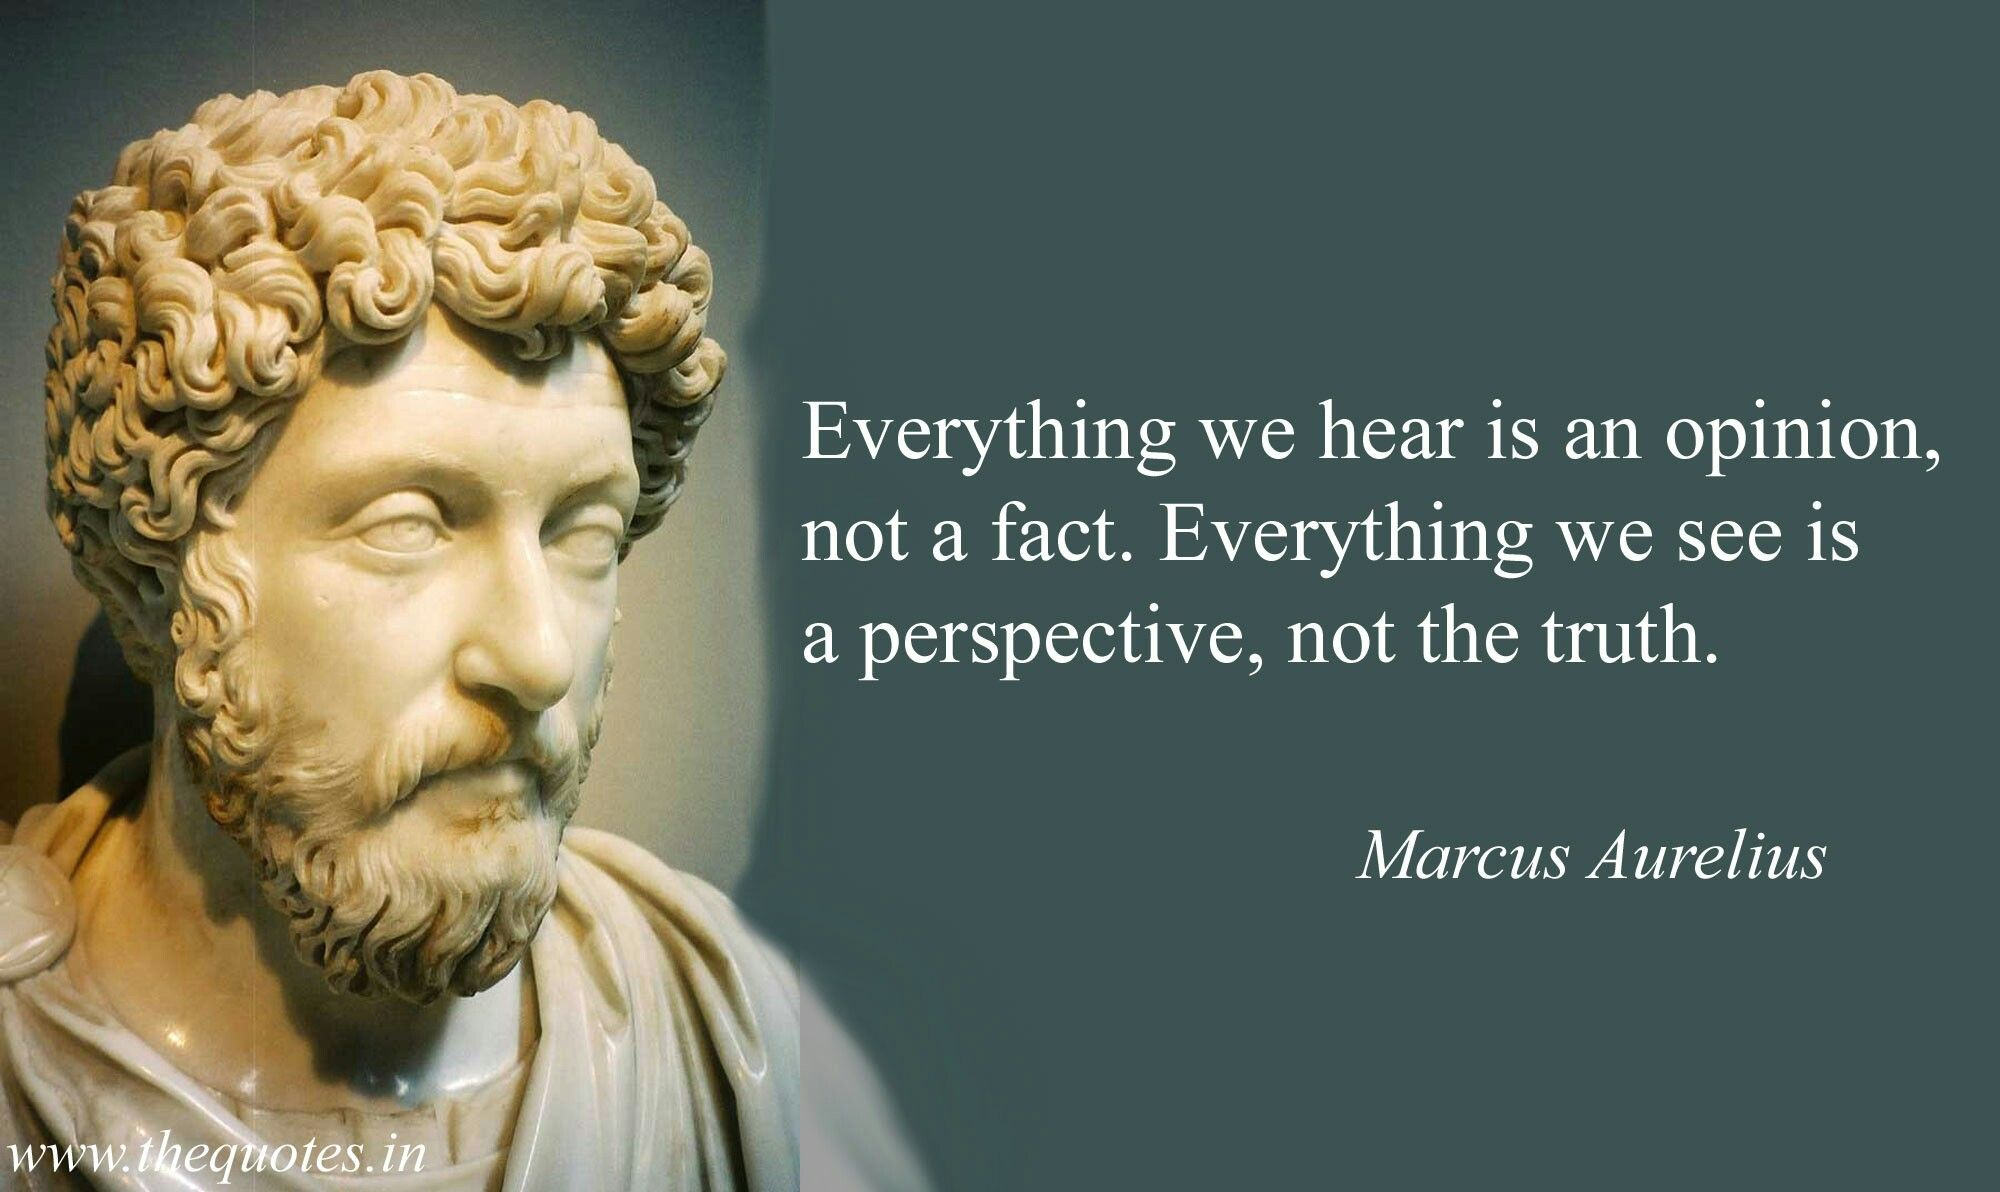 Marcus Aurelius Quotes Fascinating Marcus Aurelius  Sayings And Quotes  Pinterest  Quotation